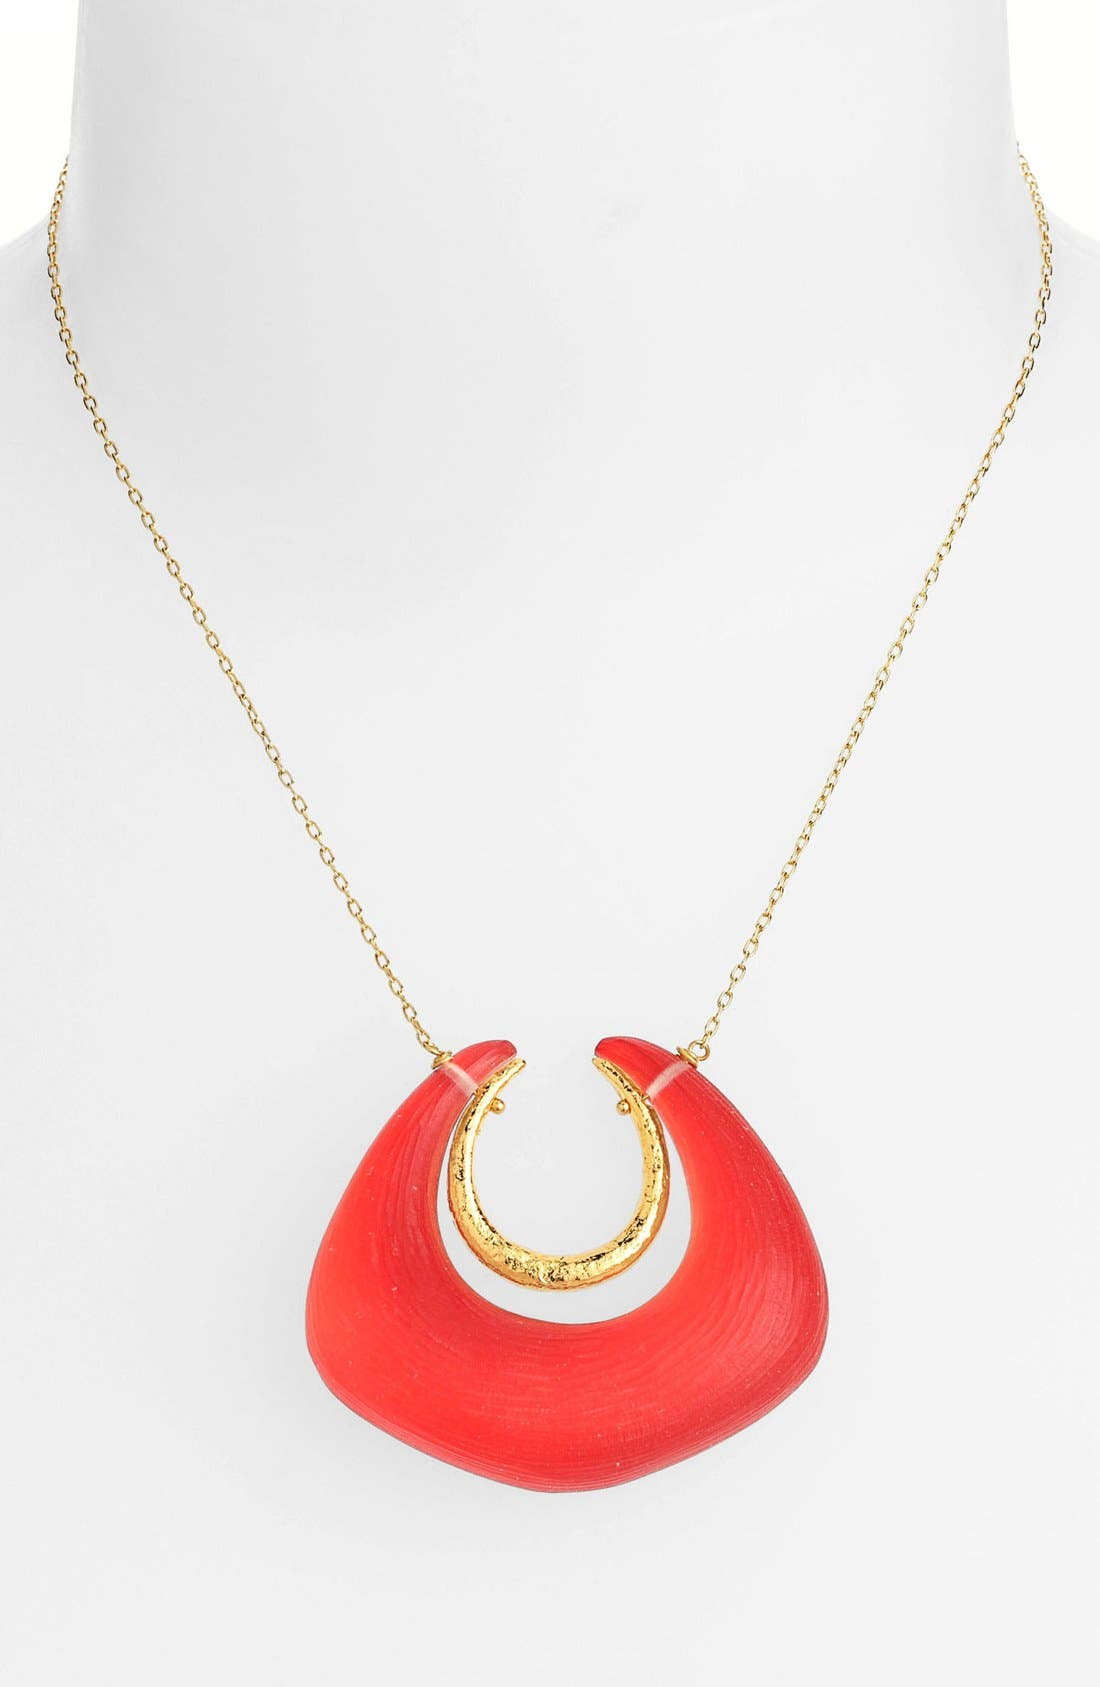 Alternate Image 1 Selected - Alexis Bittar 'Lucite®' Angled Horseshoe Pendant Necklace